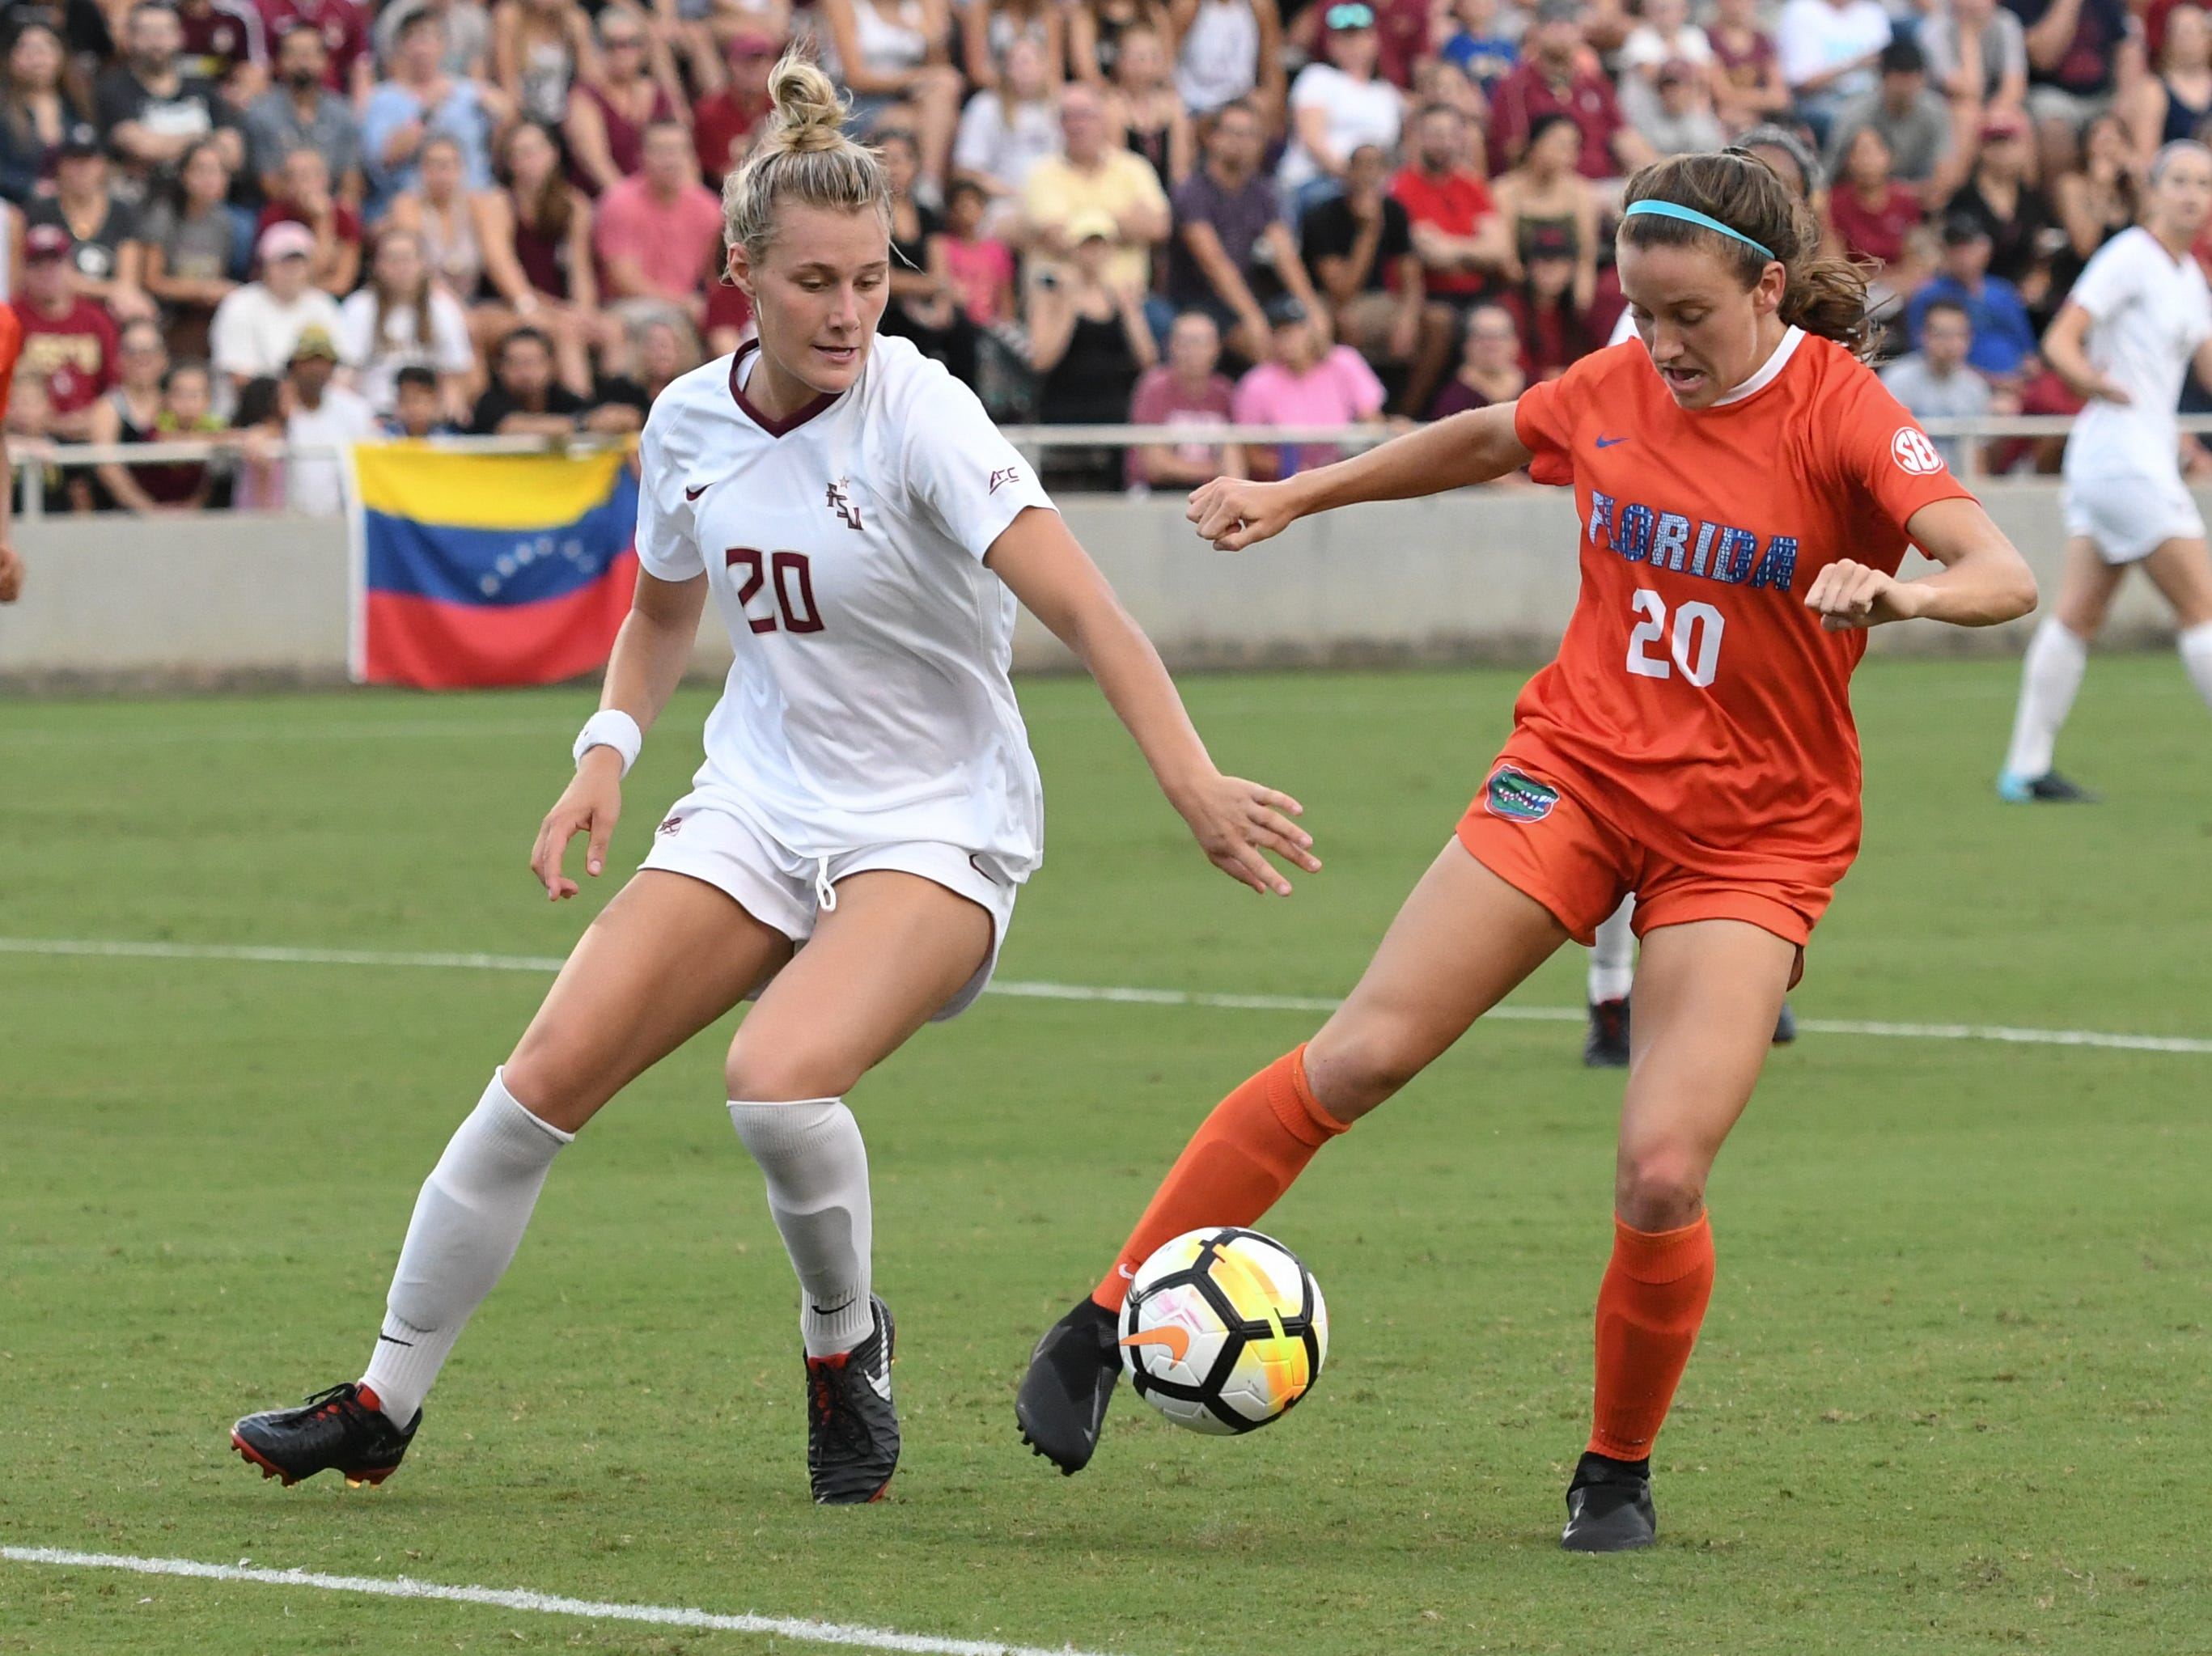 FSU redshirt sophomore forward Kristen McFarland (20) playing defense during the first half of FSU's game against Florida on friday night at the Seminole Soccer Complex.